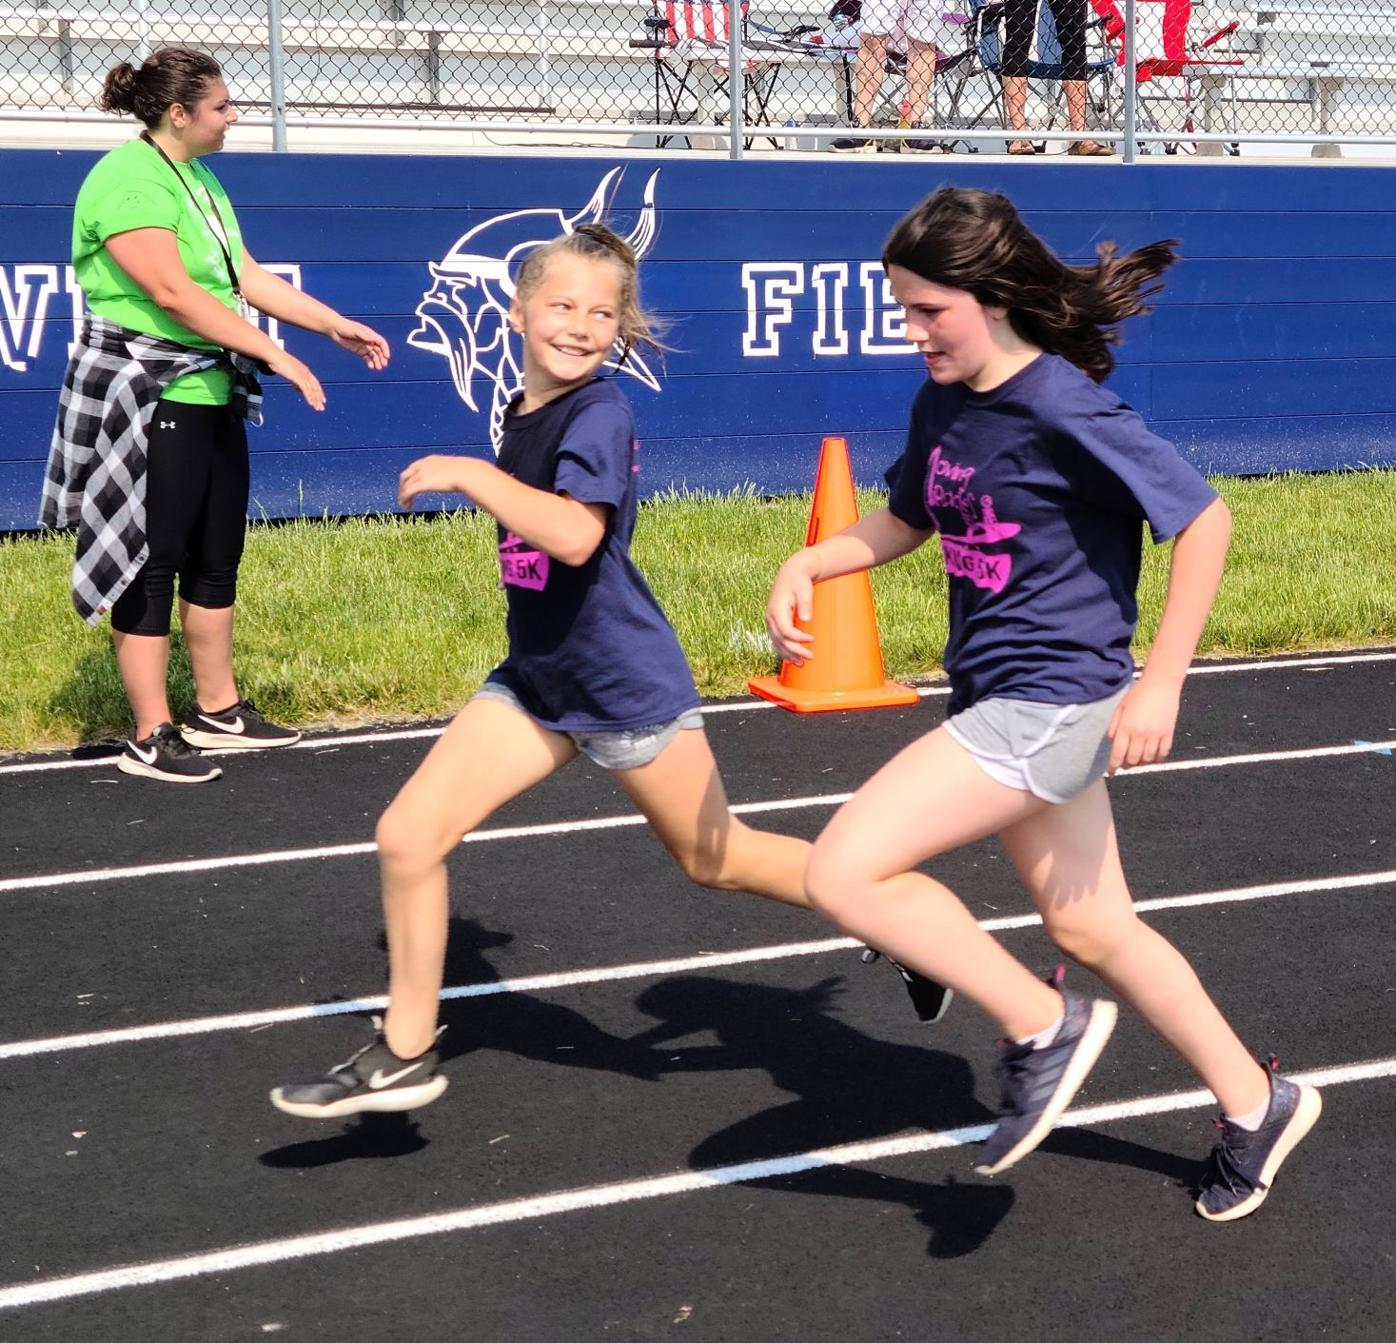 Sprinting to the finish